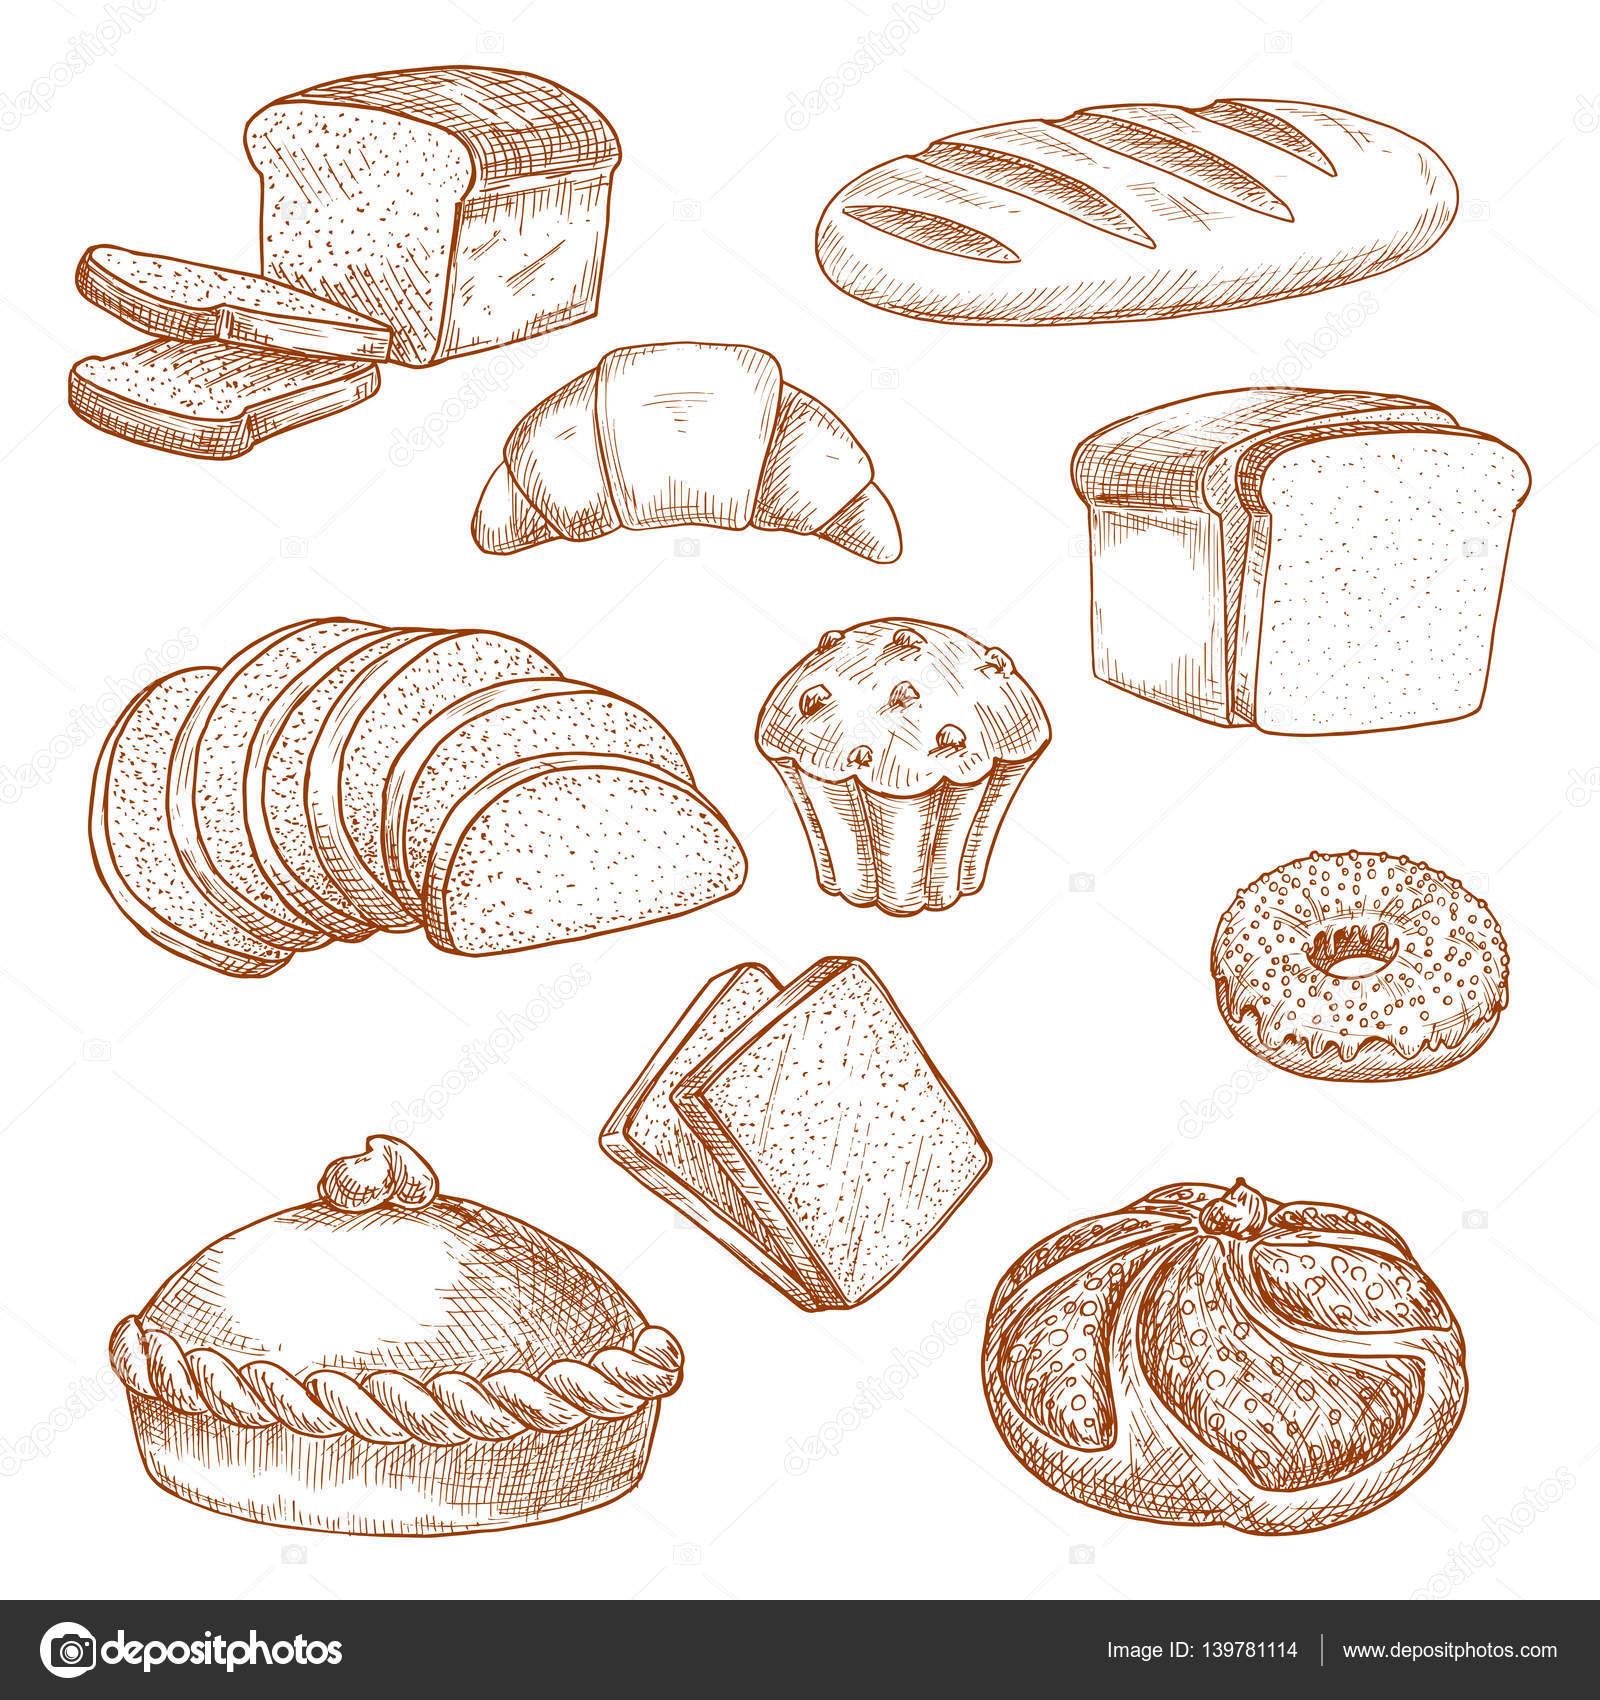 1600x1700 Pastry Or Bakery Food And Bread Sketch Stock Vector Seamartini